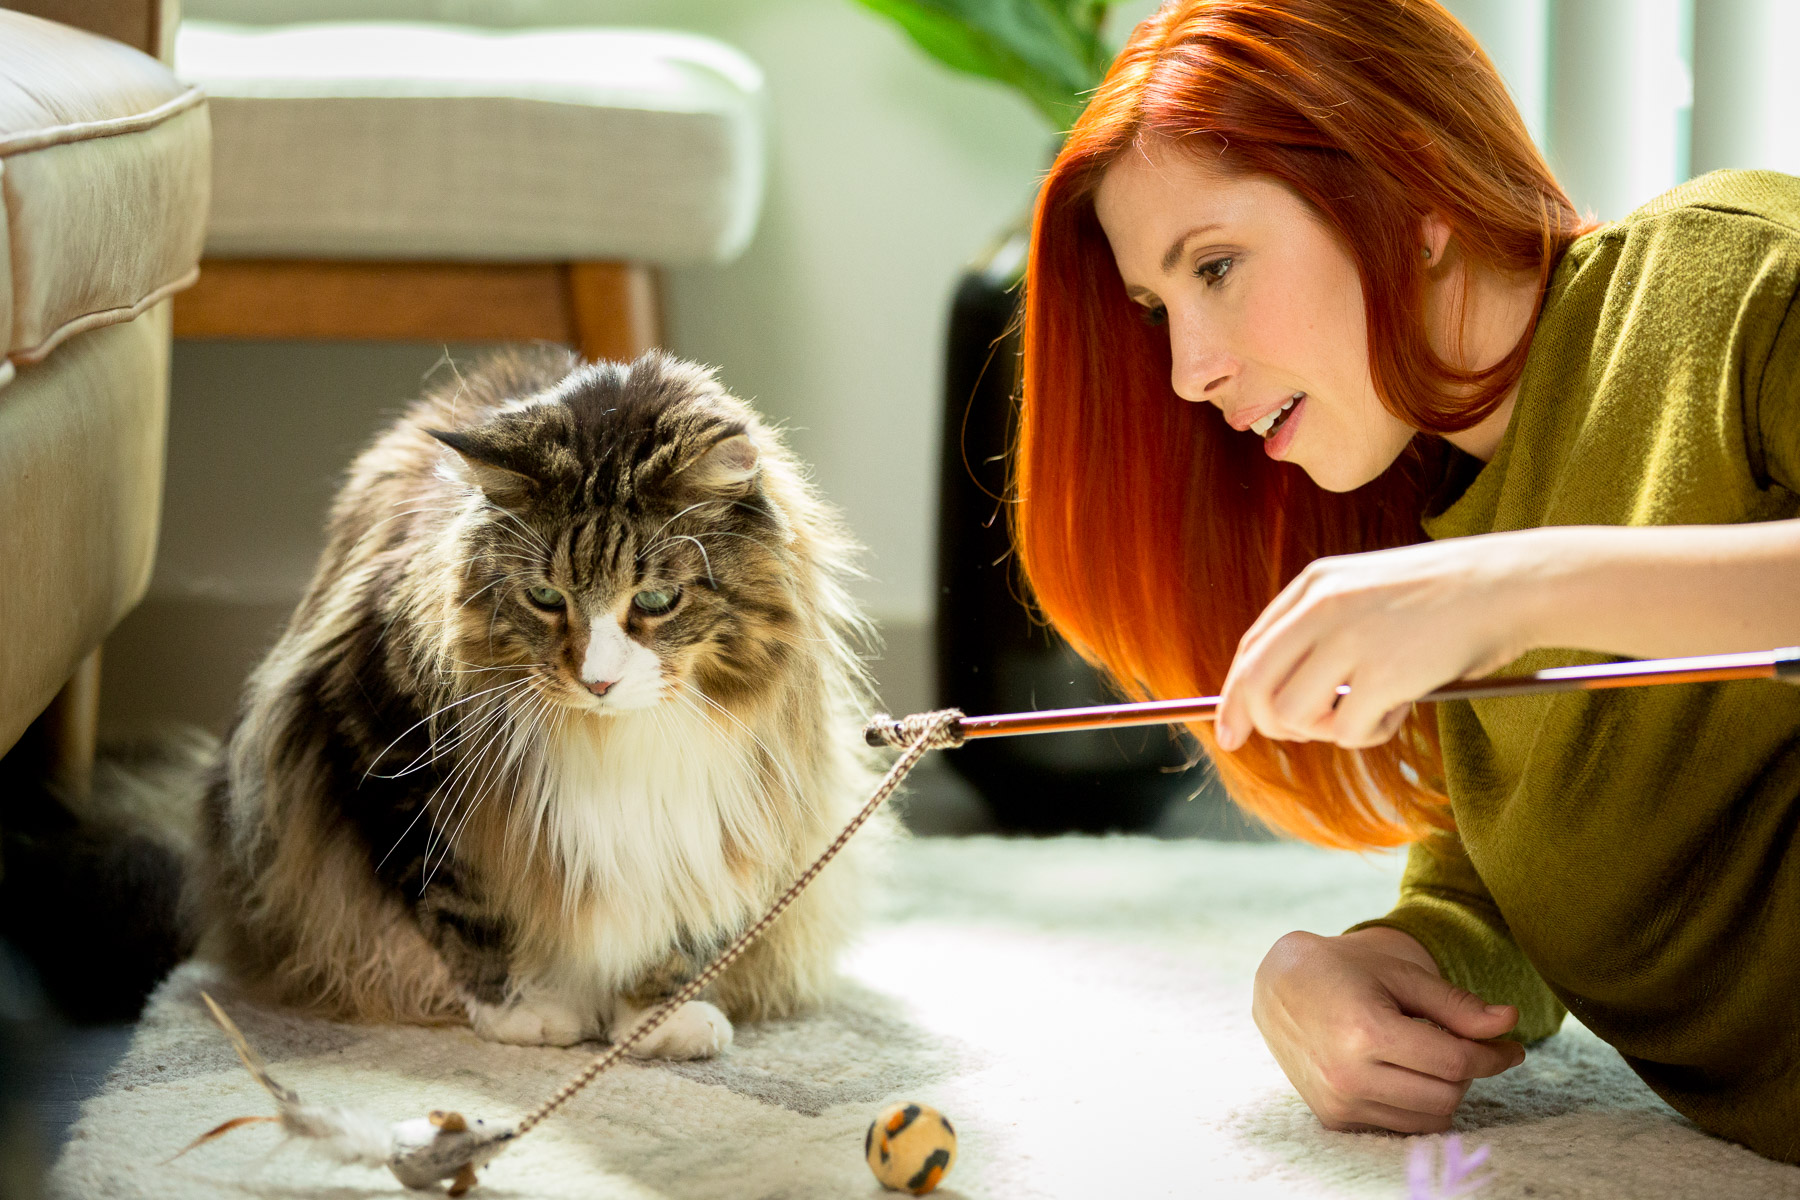 girl-playing-with-cat-lifestyle-animal-photographer.jpg